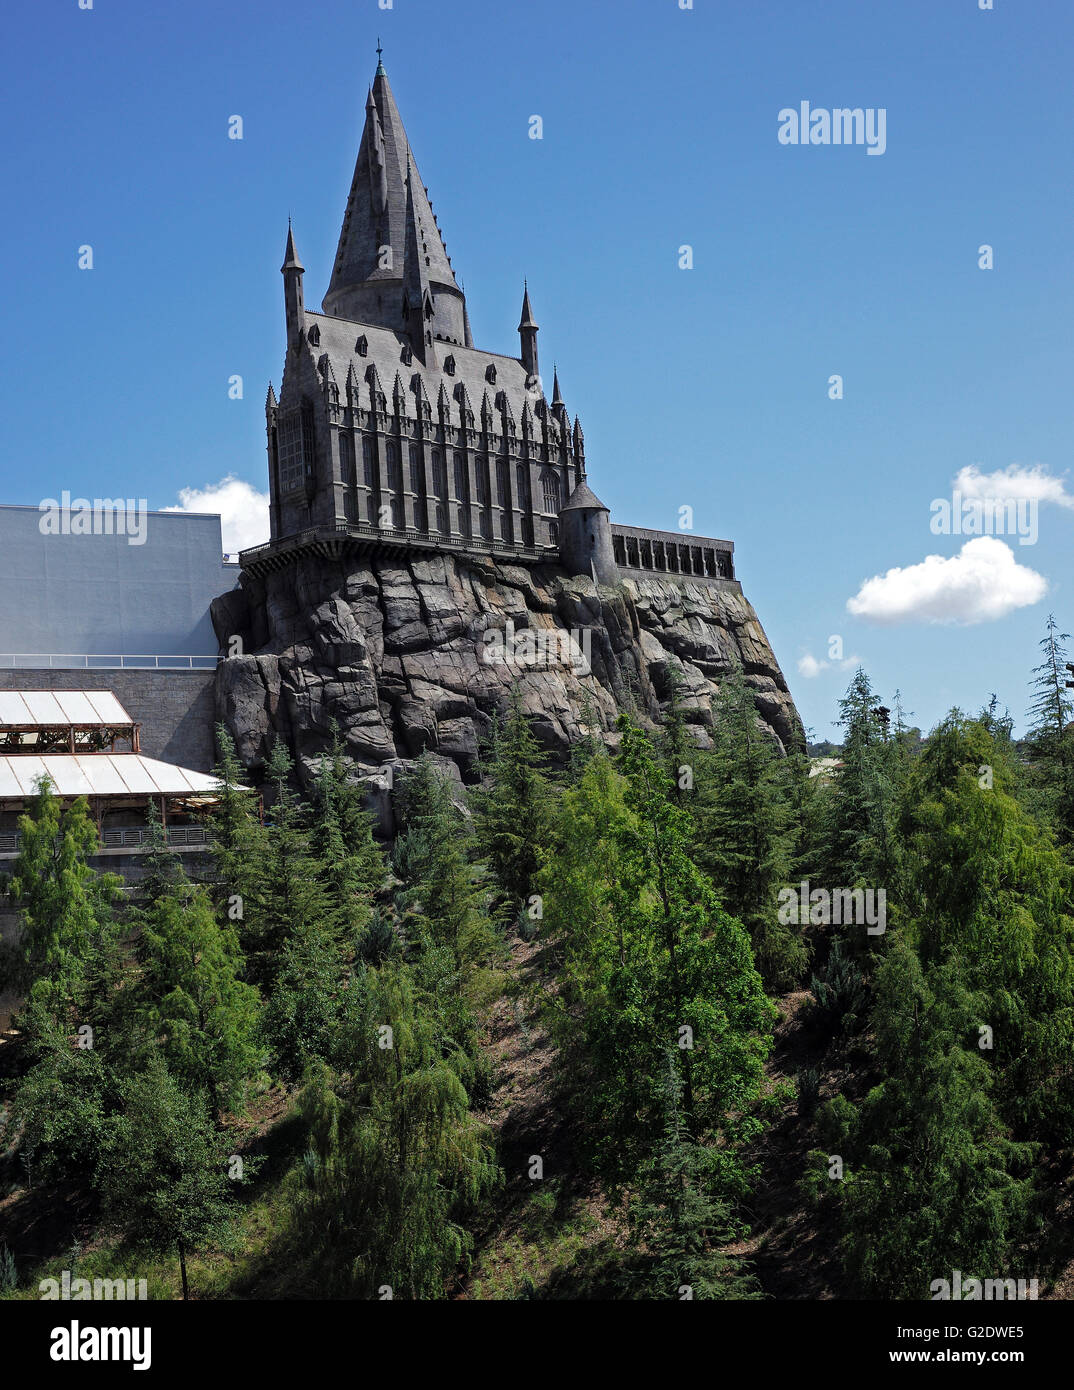 Hogwarts School of Witchcraft and Wizardry Castle - Stock Image